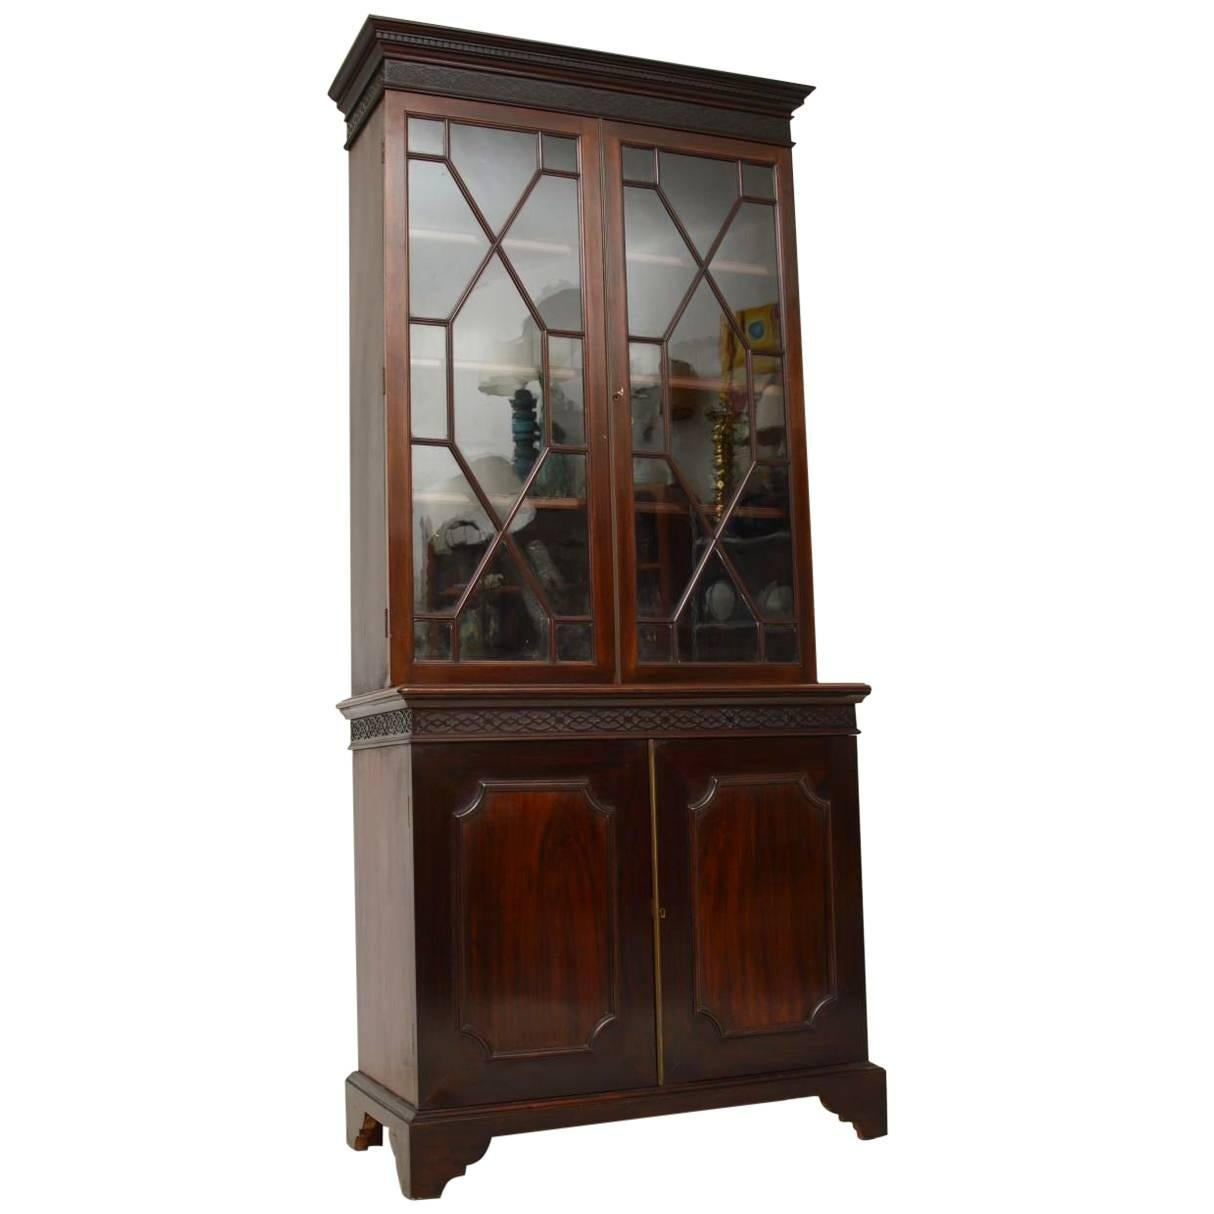 Antiques Stunning Mahogany Chippendale Style Astral Glazed Display Cabinet